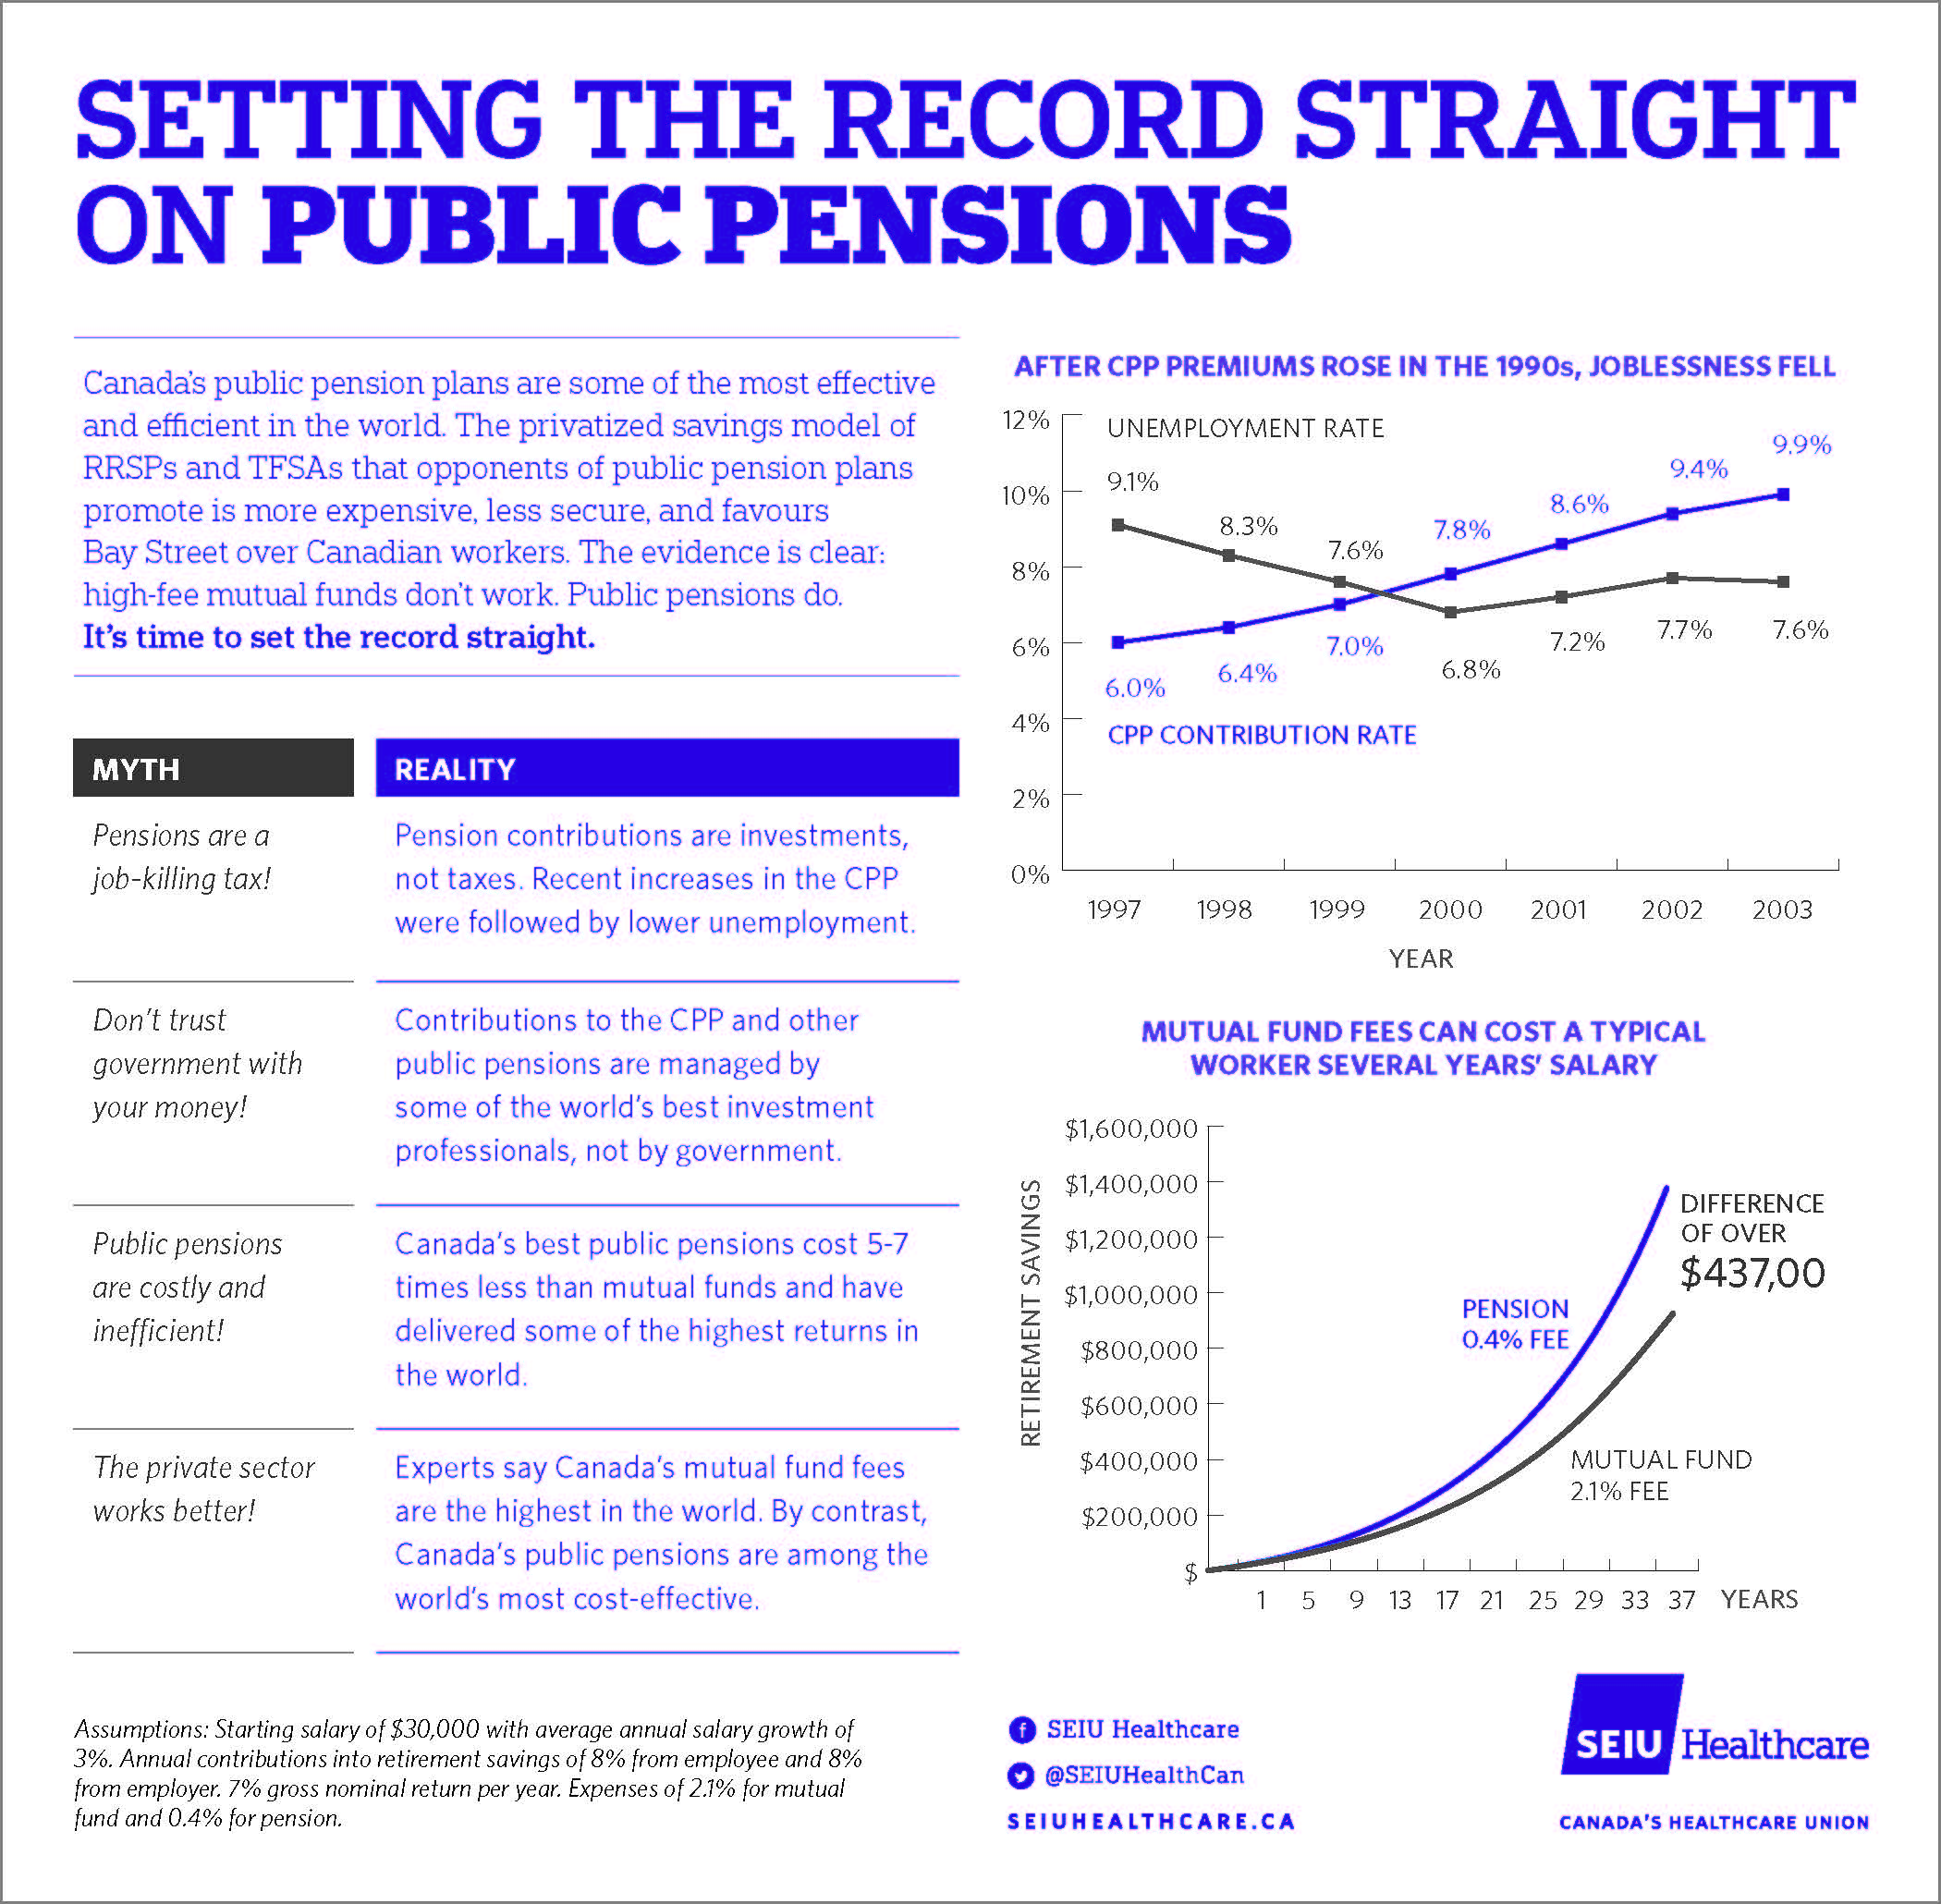 Setting the record straight on public pensions